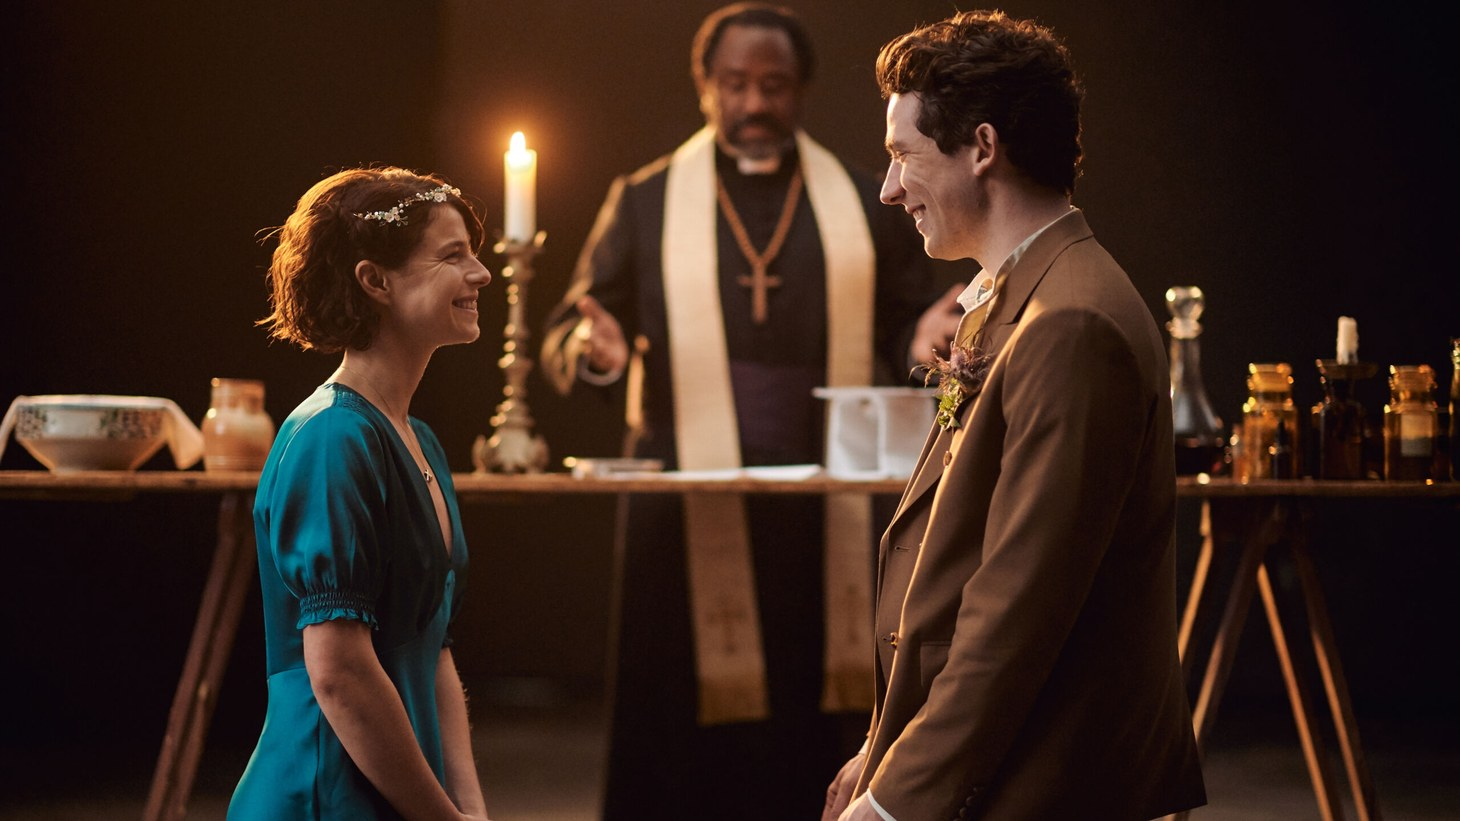 """Jessie Buckley (Juliet), Lucian Msamati (Friar Laurence) and Josh O'Connor (Romeo) in """"Romeo & Juliet"""" at the National Theatre. After the pandemic shut down the stage version of the famous play, Simon Godwin directed a film adaptation, now streaming on PBS."""